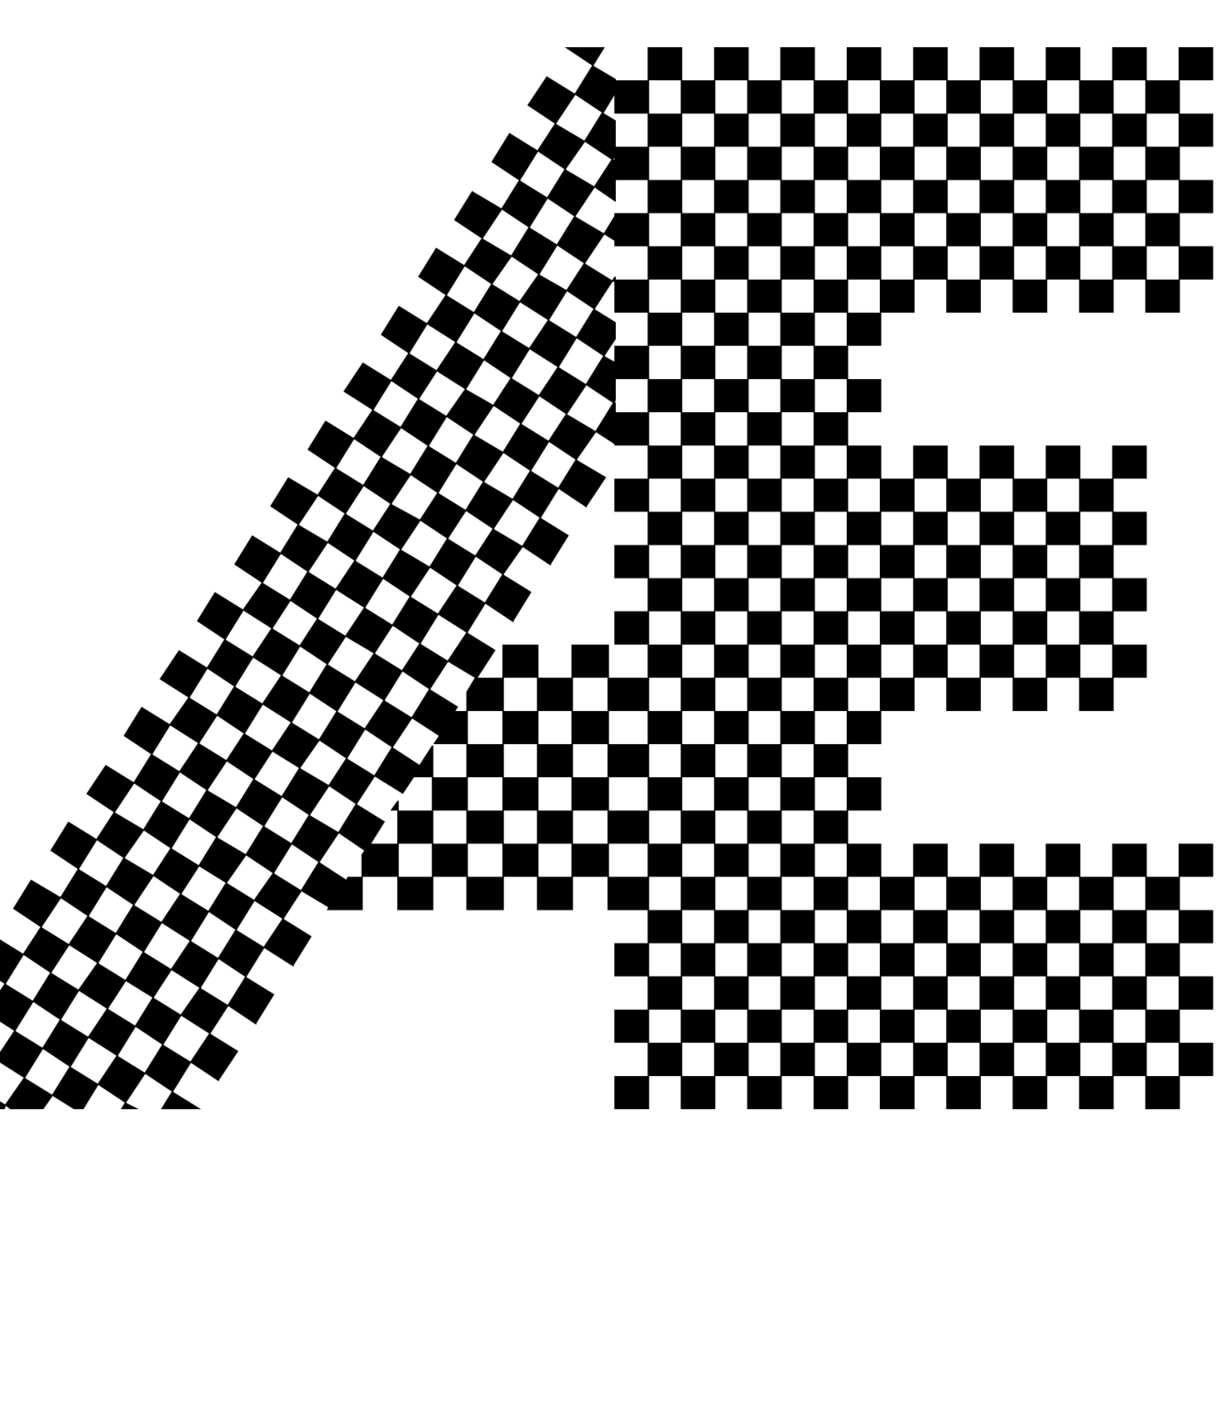 pattern-project-letters-43-1220x1407px